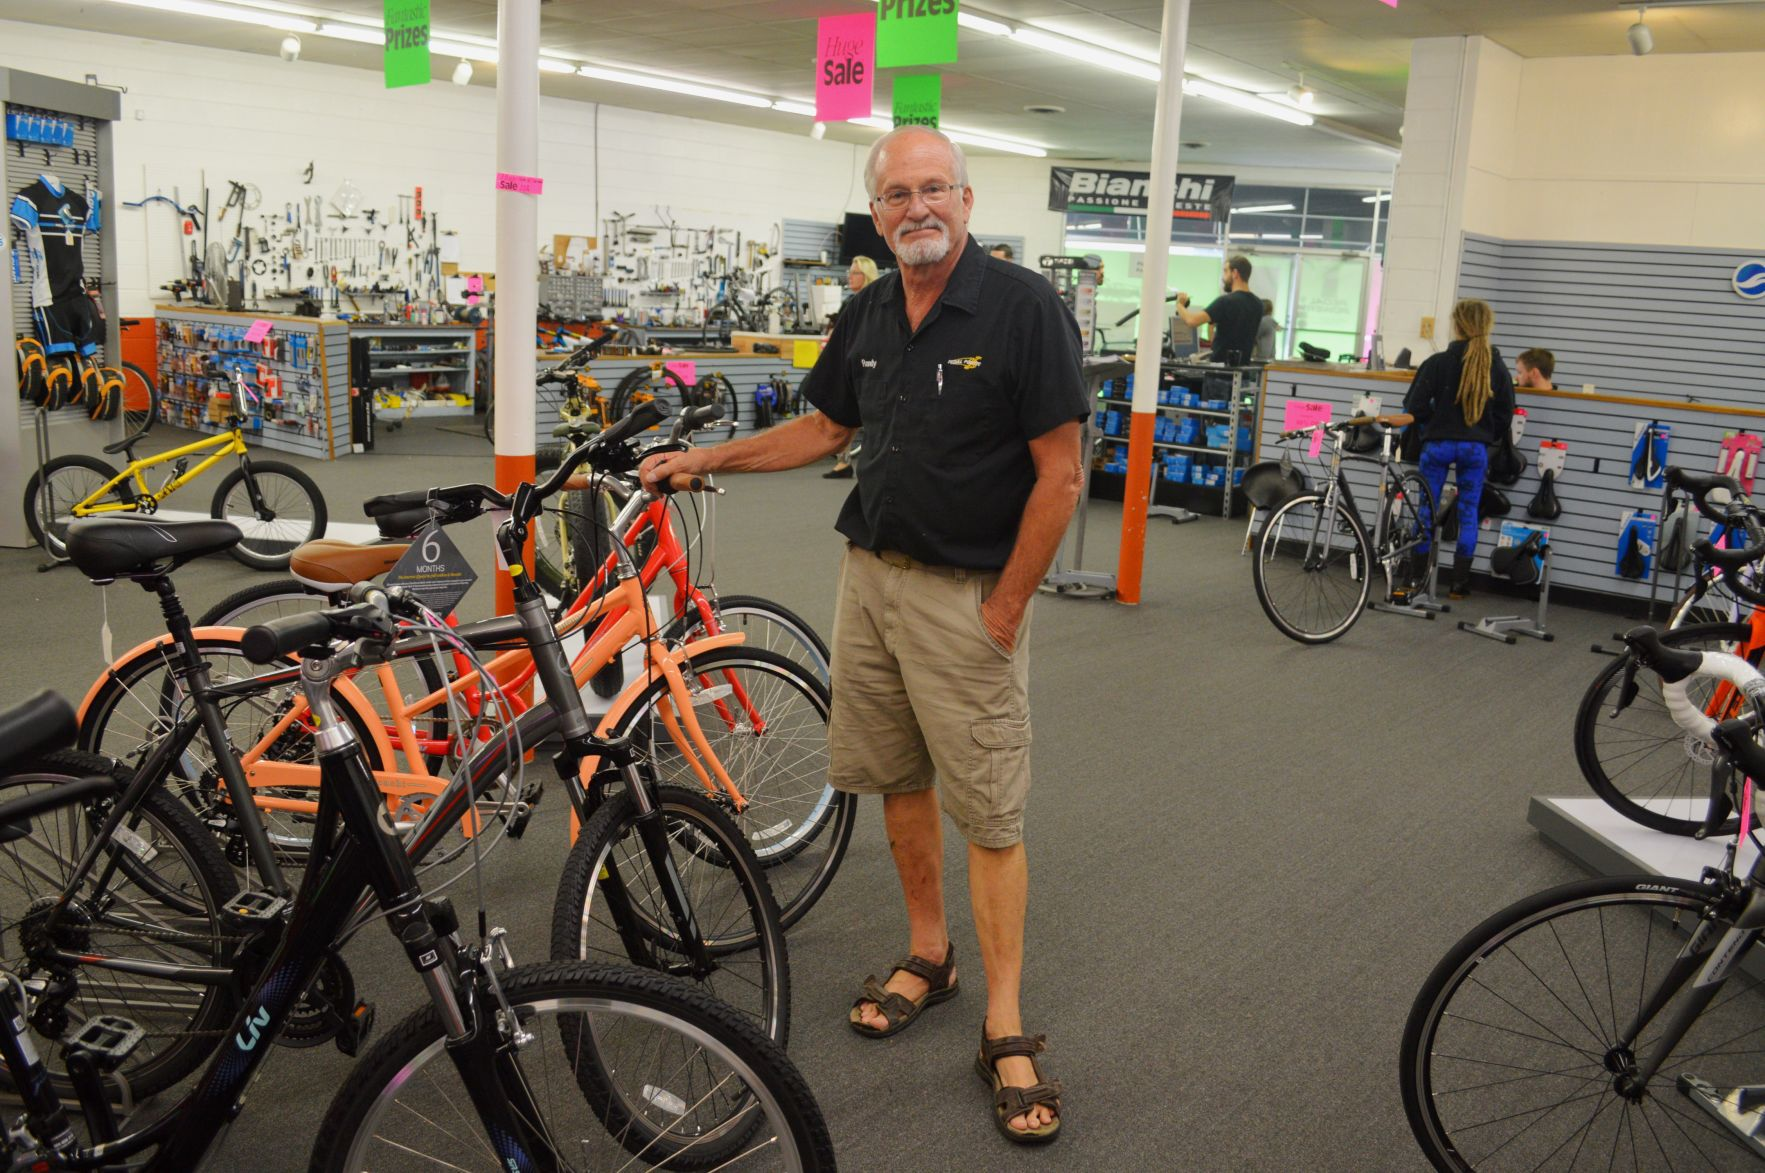 Bike Shop Sale Biz Buzz Pedal Power Bike Shop Closing At The End Of The Year